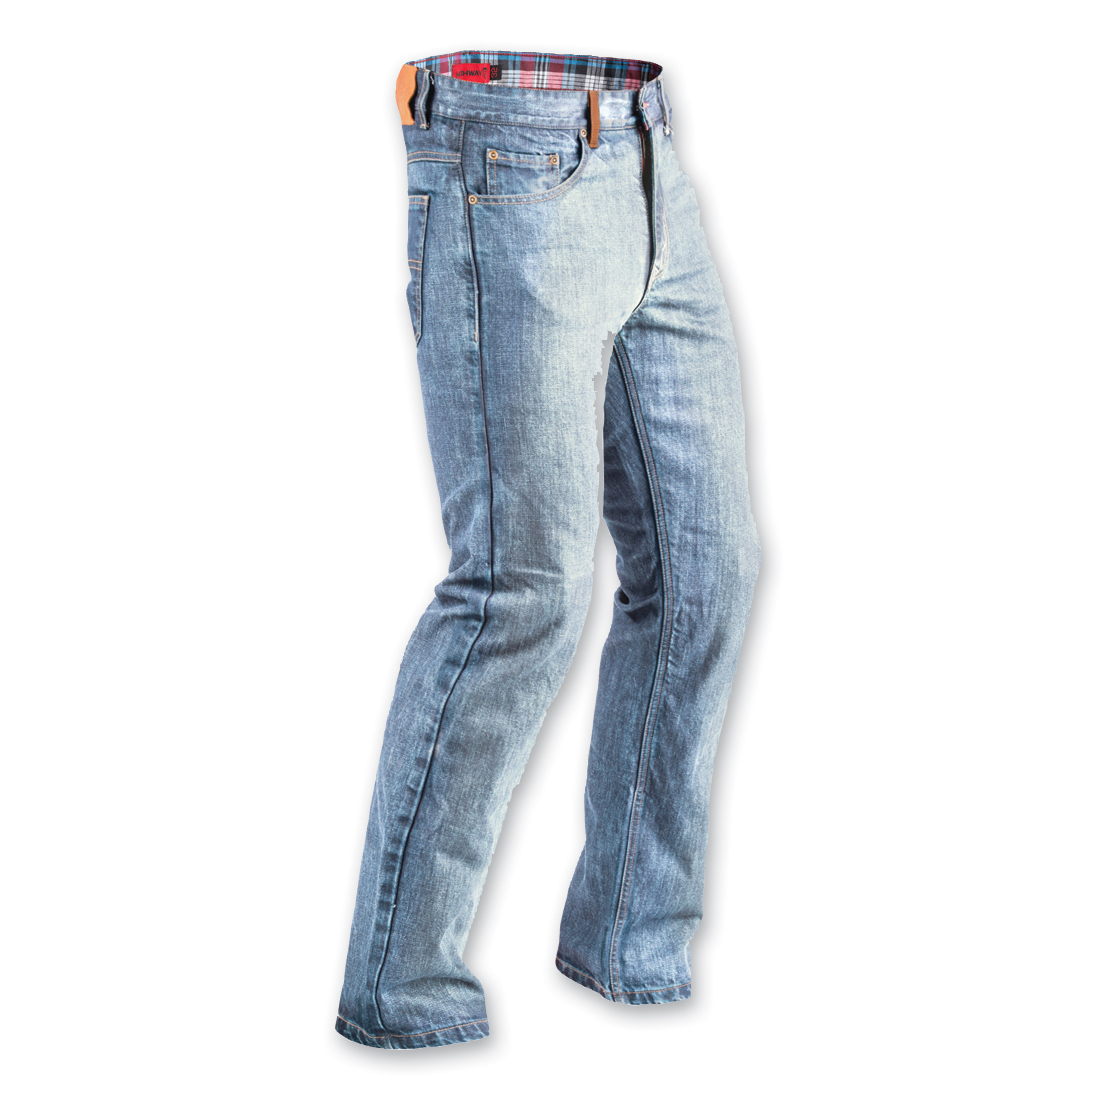 Highway 21 Men's Defender Indigo Jeans